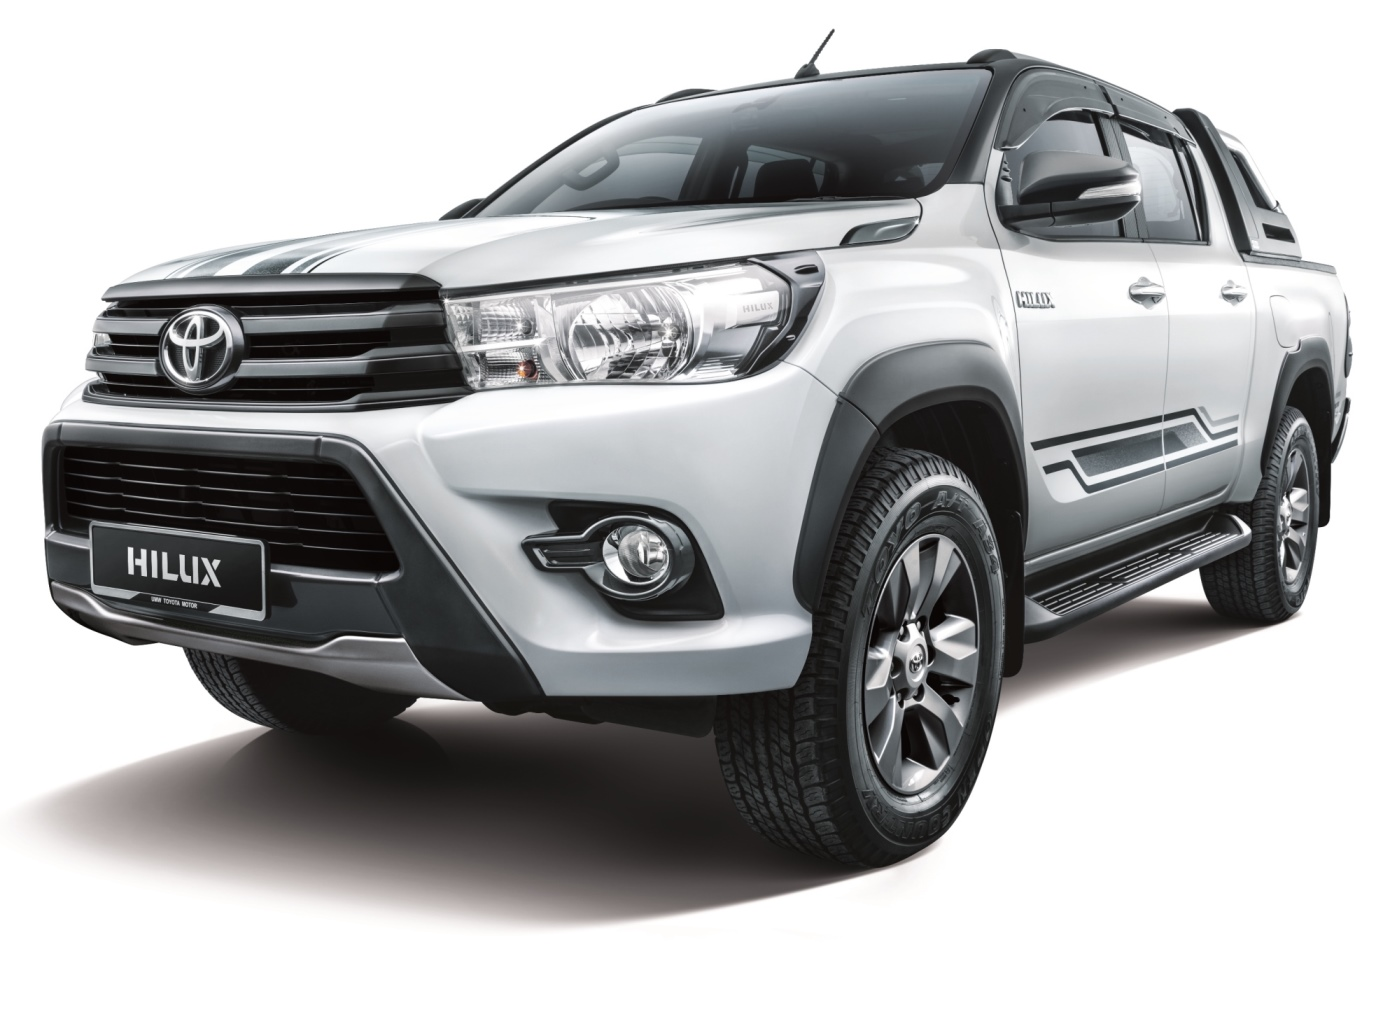 Toyota Hilux 2.4G Limited Edition开售,价格RM126k。 Hilux ...